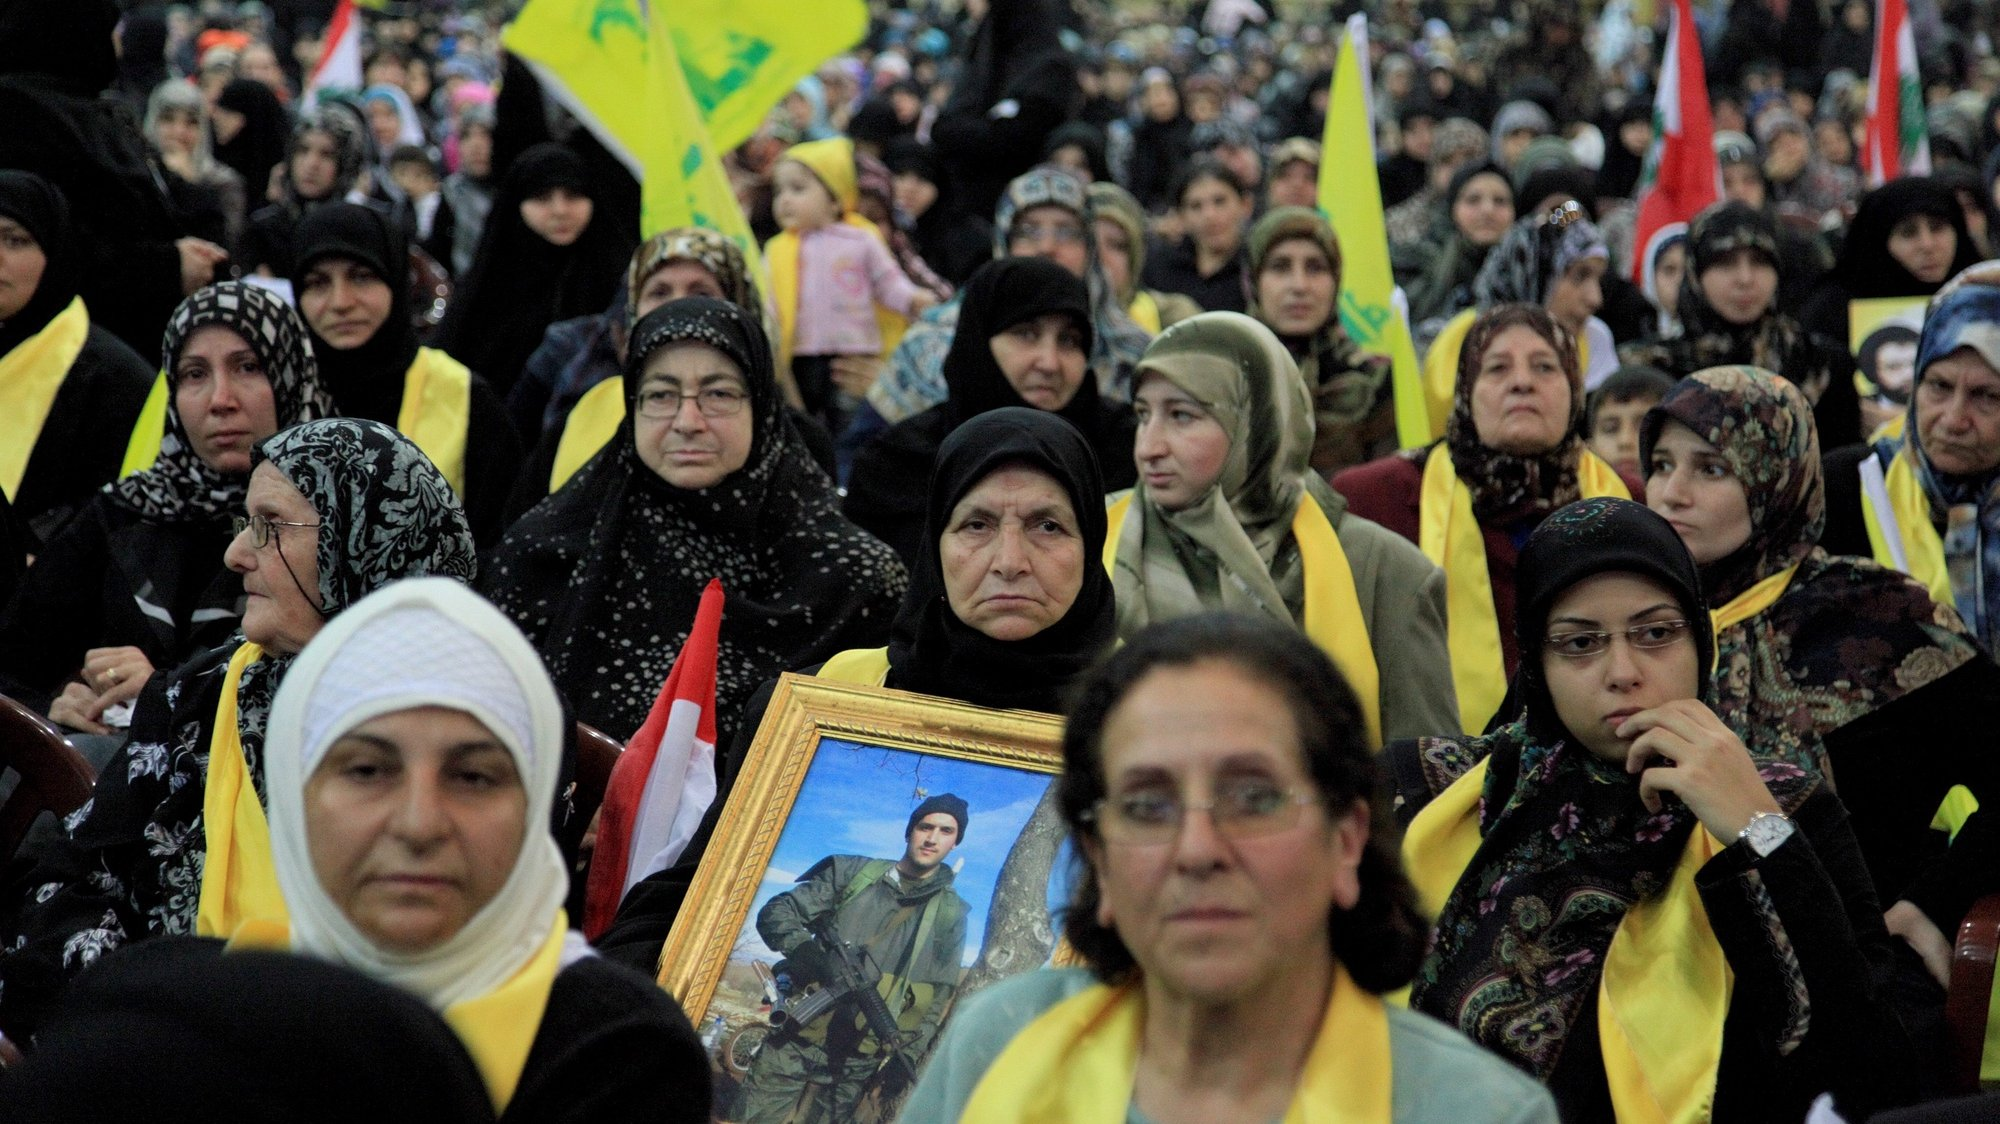 epa01929868 Relatives of Hezbollah fighters listen to Lebanese Shiite group leader Hassan Nasrallah (unseen) as he addresses a rally to commemorate Martyr's Day in the southern suburbs of Beirut, Libanon  11 November 2009. Hassan Nassrallah said during a speech: 'We call for cooperation and national solidarity government rather than a barricade government'.  Lebanon's incoming Prime Minister Saad Hariri announced on 09 November 2009 the new cabinet line-up after nearly five months of tough negotiations with his rivals in the Iran- and Syria-backed Hezbollah-led alliance.  EPA/NABIL MOUNZER